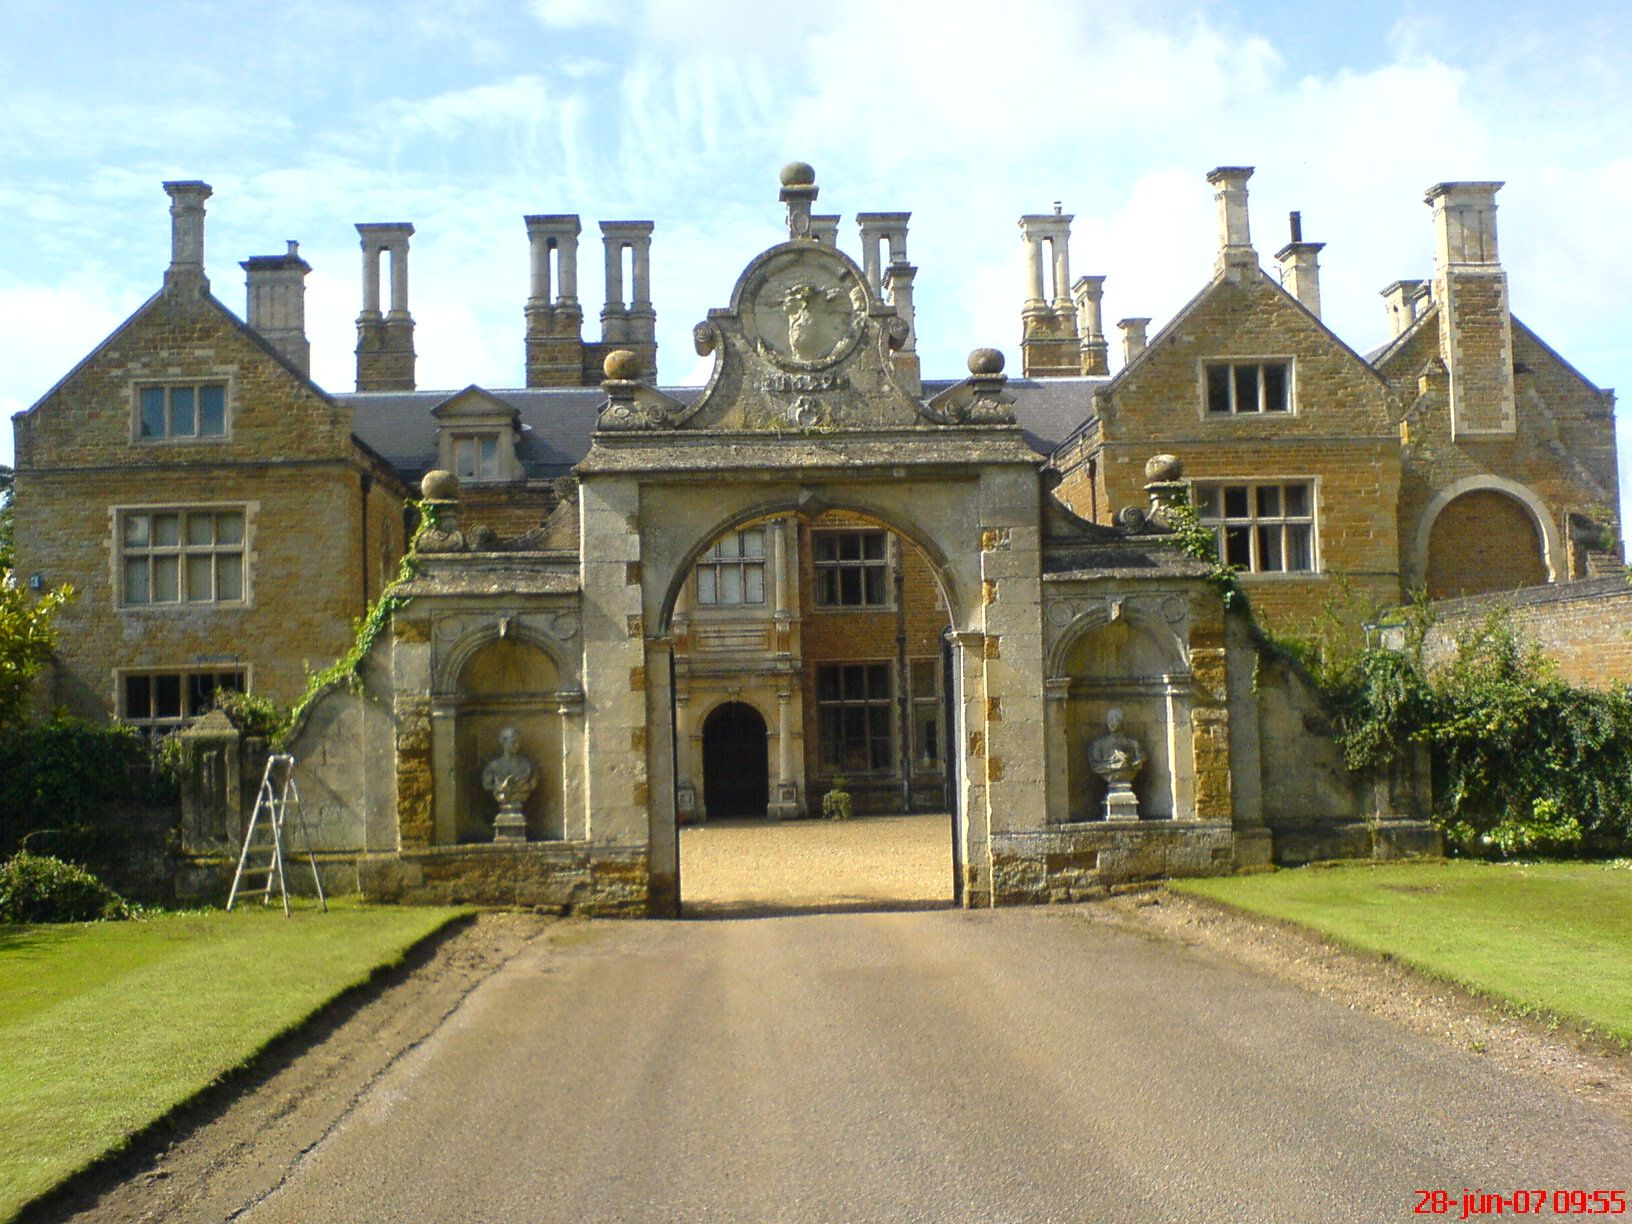 Holdenby house in northamptonshire england not far from althorp